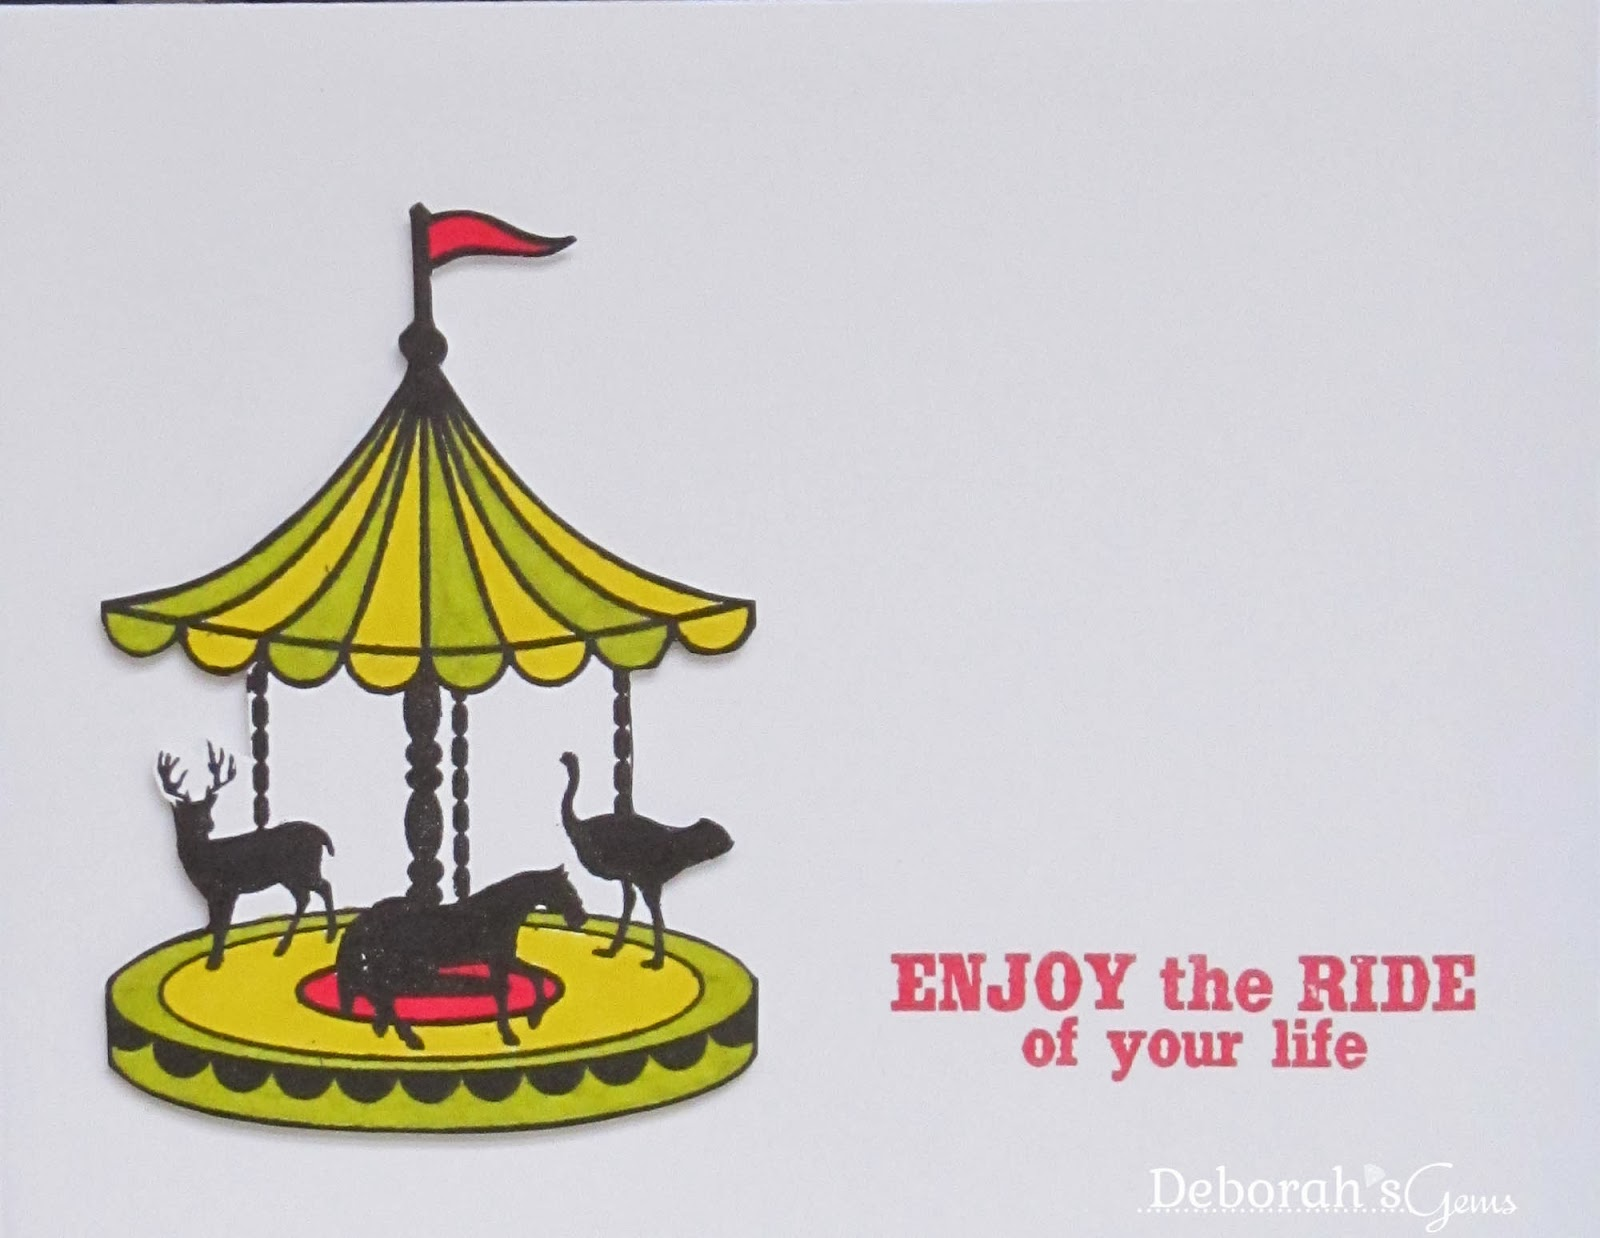 Enjoy the Ride - photo by Deborah Frings - Deborah's Gems